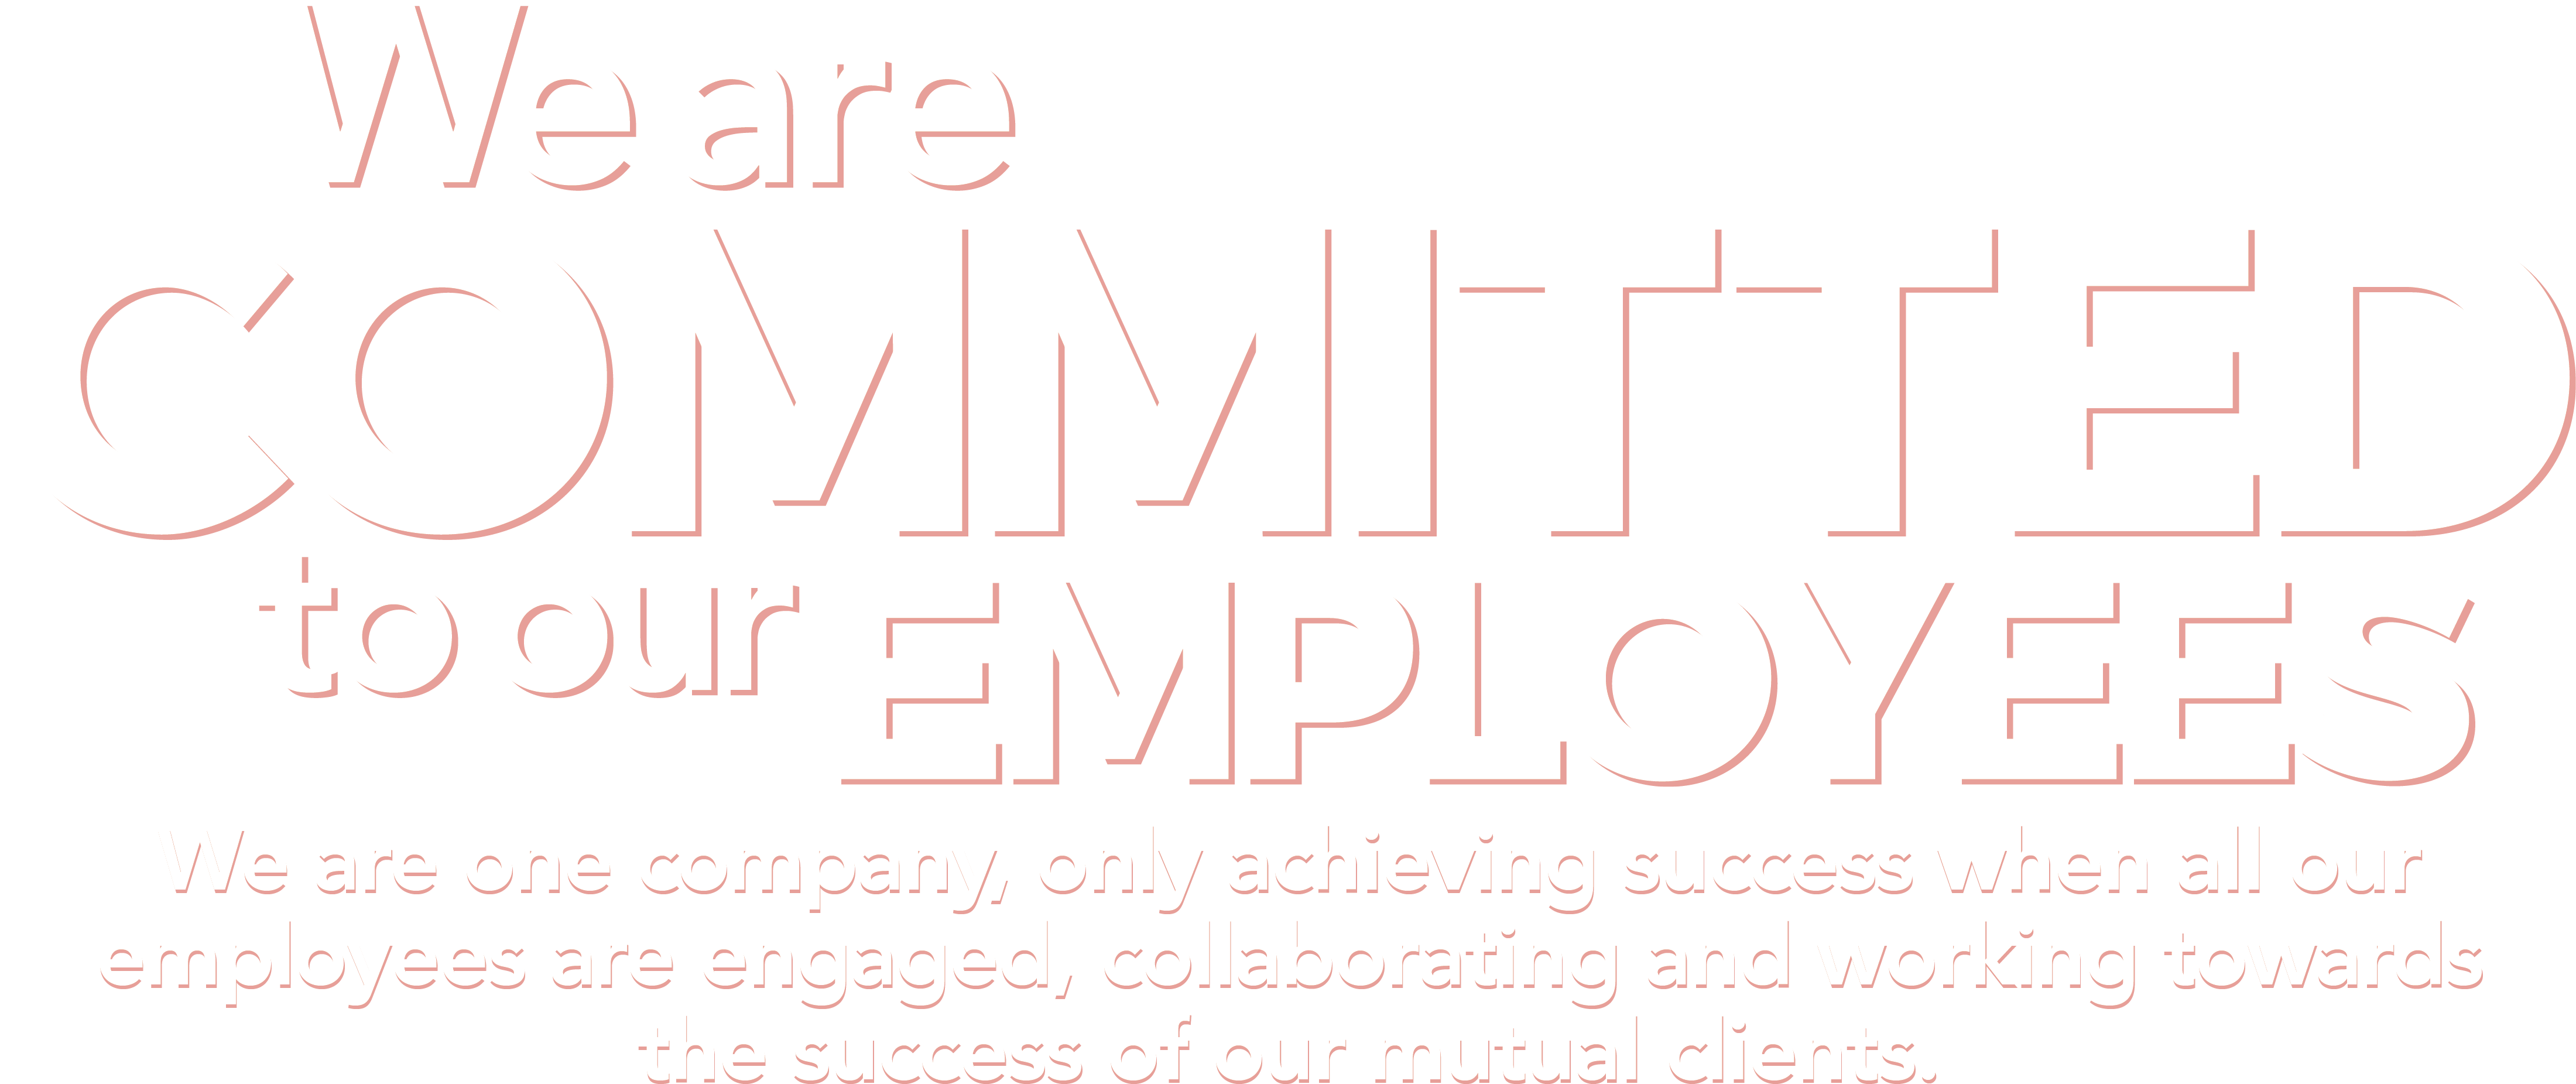 We Are Committed To Our Employees - Committed To Our Community (5040x2880), Png Download